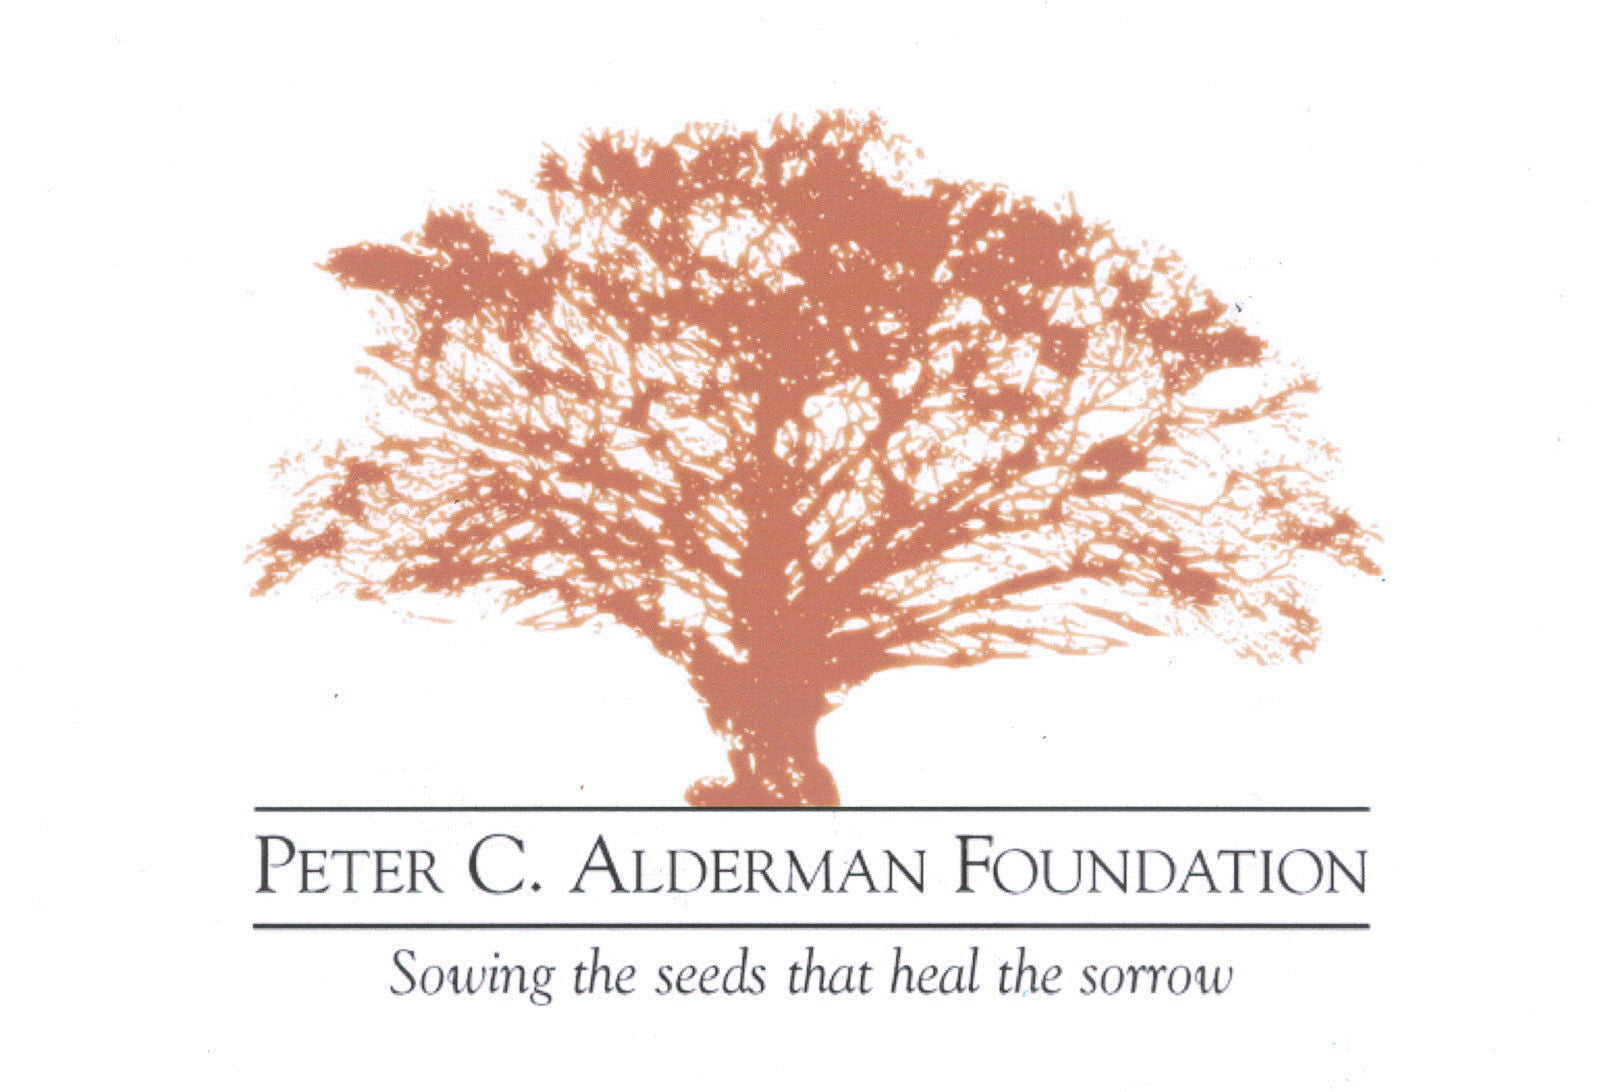 Peter C. Alderman Foundation logo